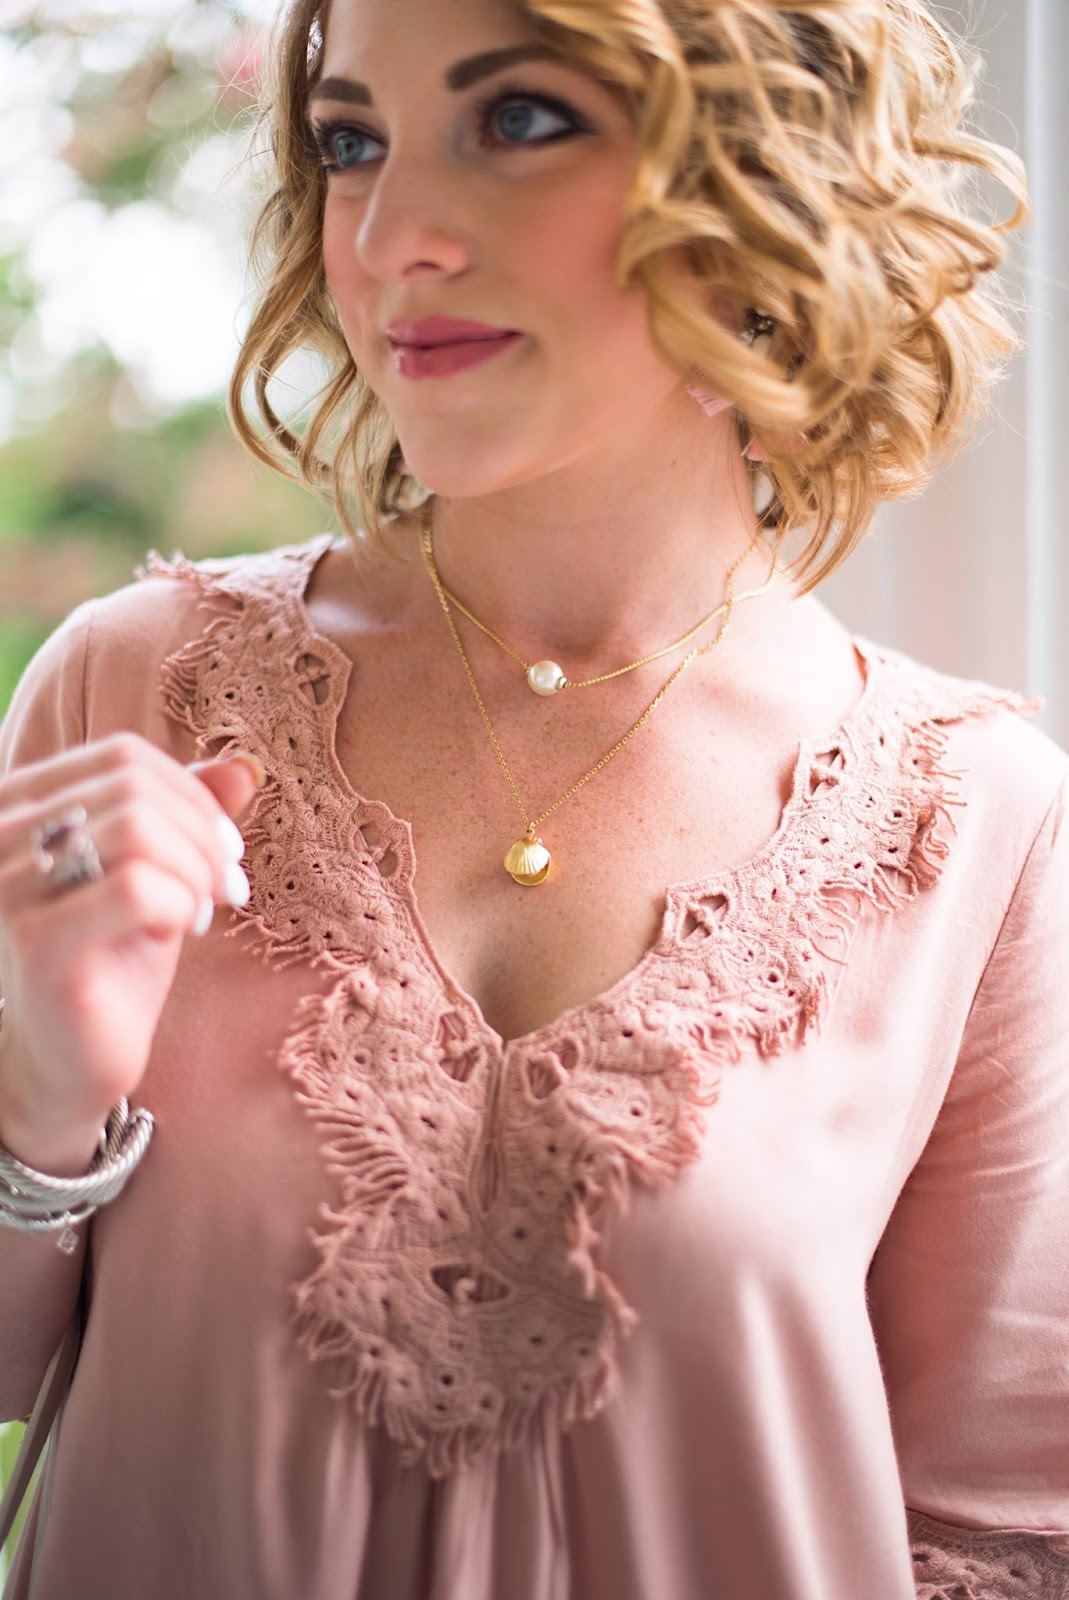 Kiel James Patrick Necklaces - Click through to see more on Something Delightful Blog!